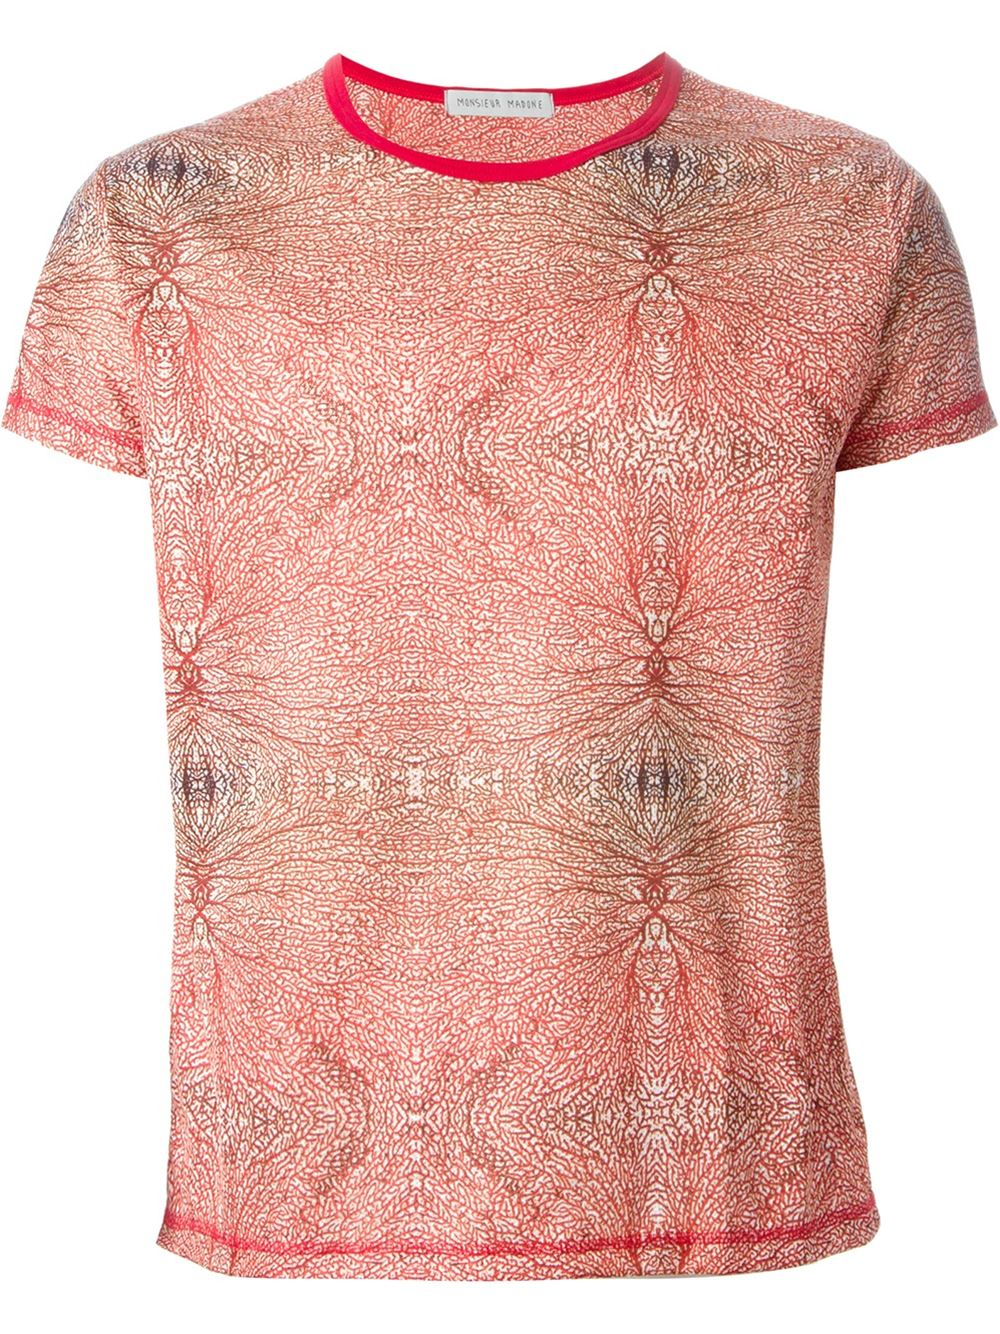 Monsieur Madone Coral Print T Shirt In Red For Men Lyst